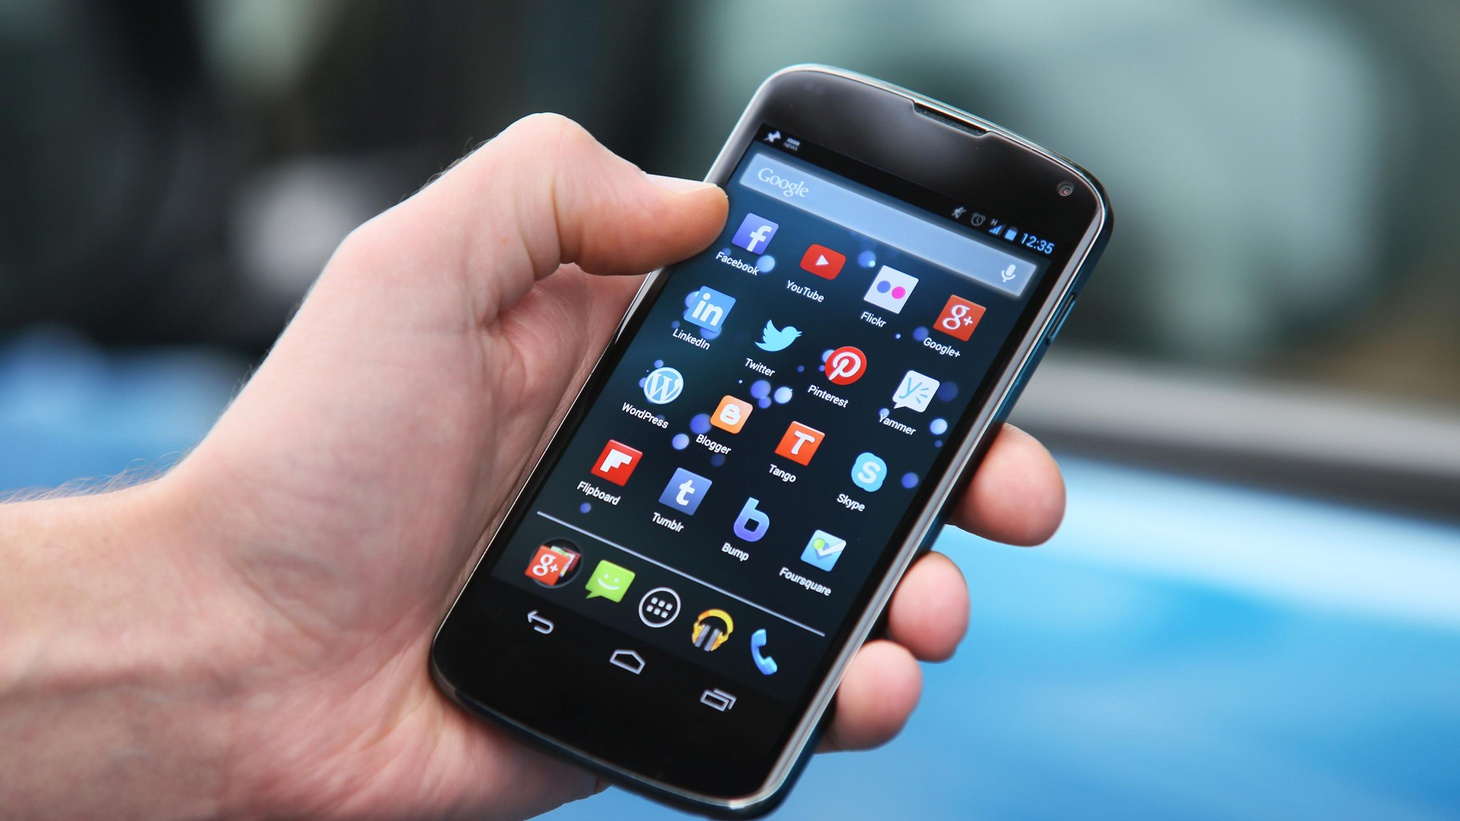 """Law enforcement says apps that allow users to track stolen smartphones can lead to dangerous encounters. Proposed """"kill switch"""" legislation might discourage cellphone theft."""